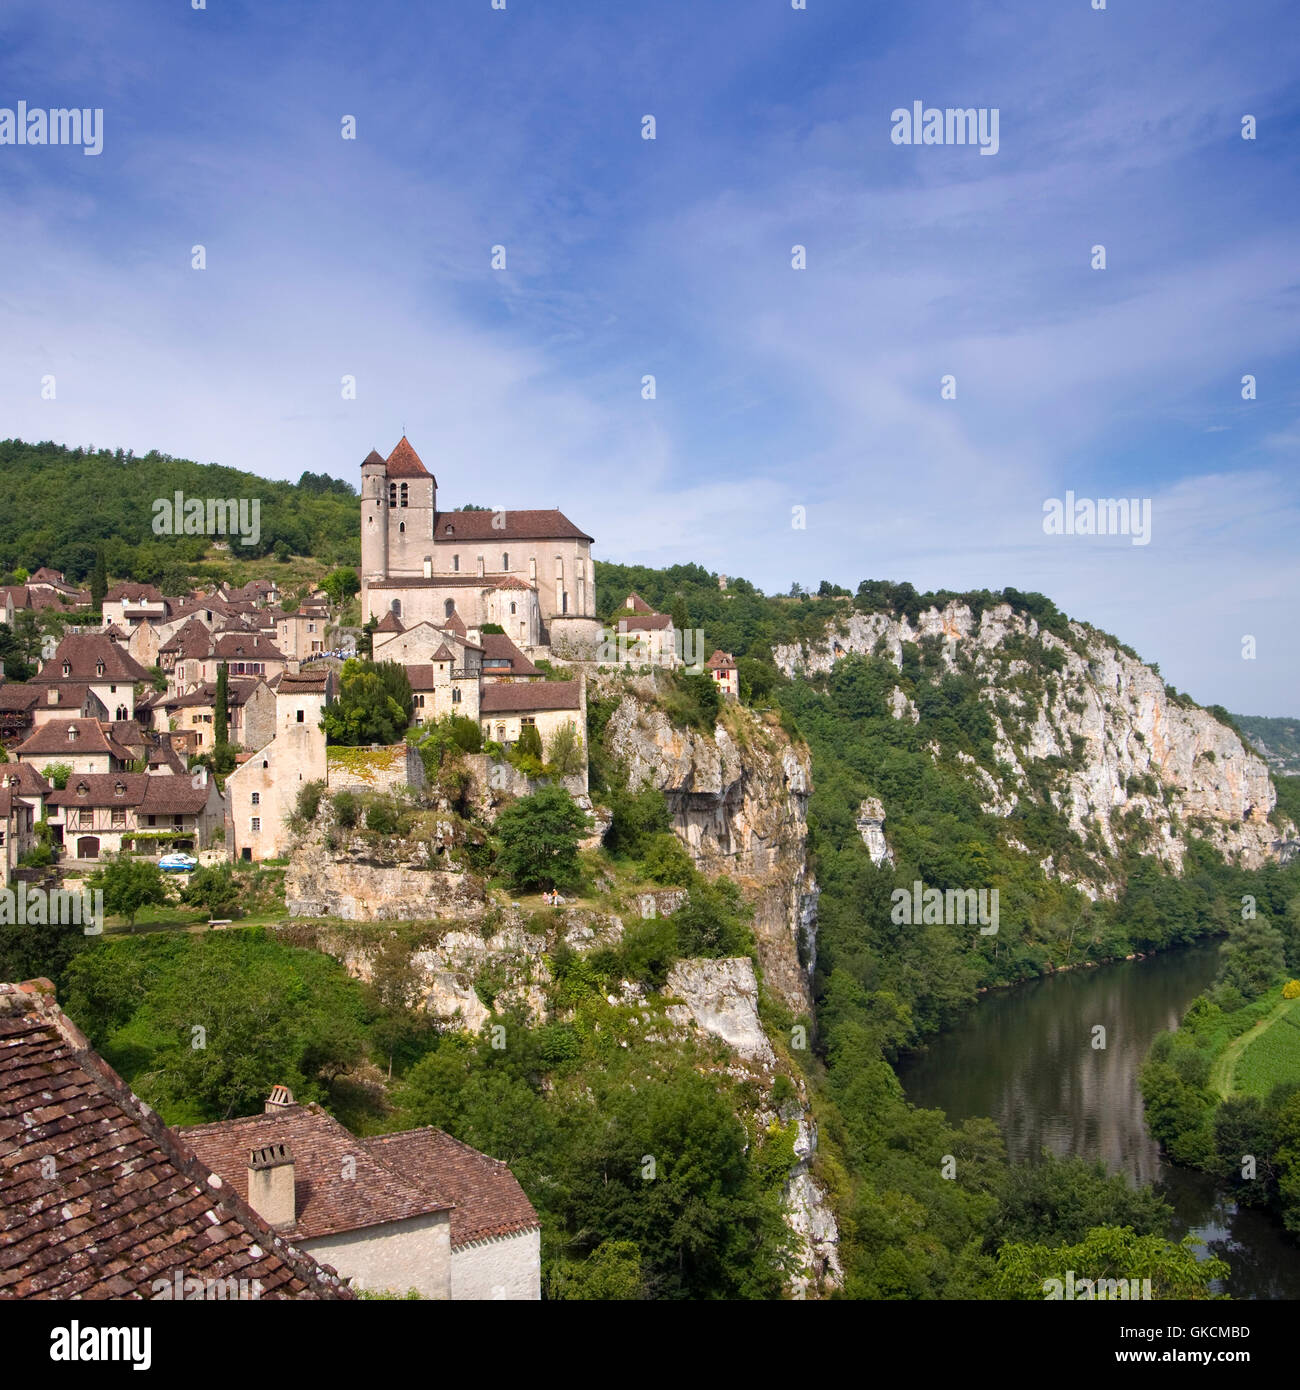 The historic clifftop village tourist attraction of St Cirq Lapopie, Lot, France - Stock Image